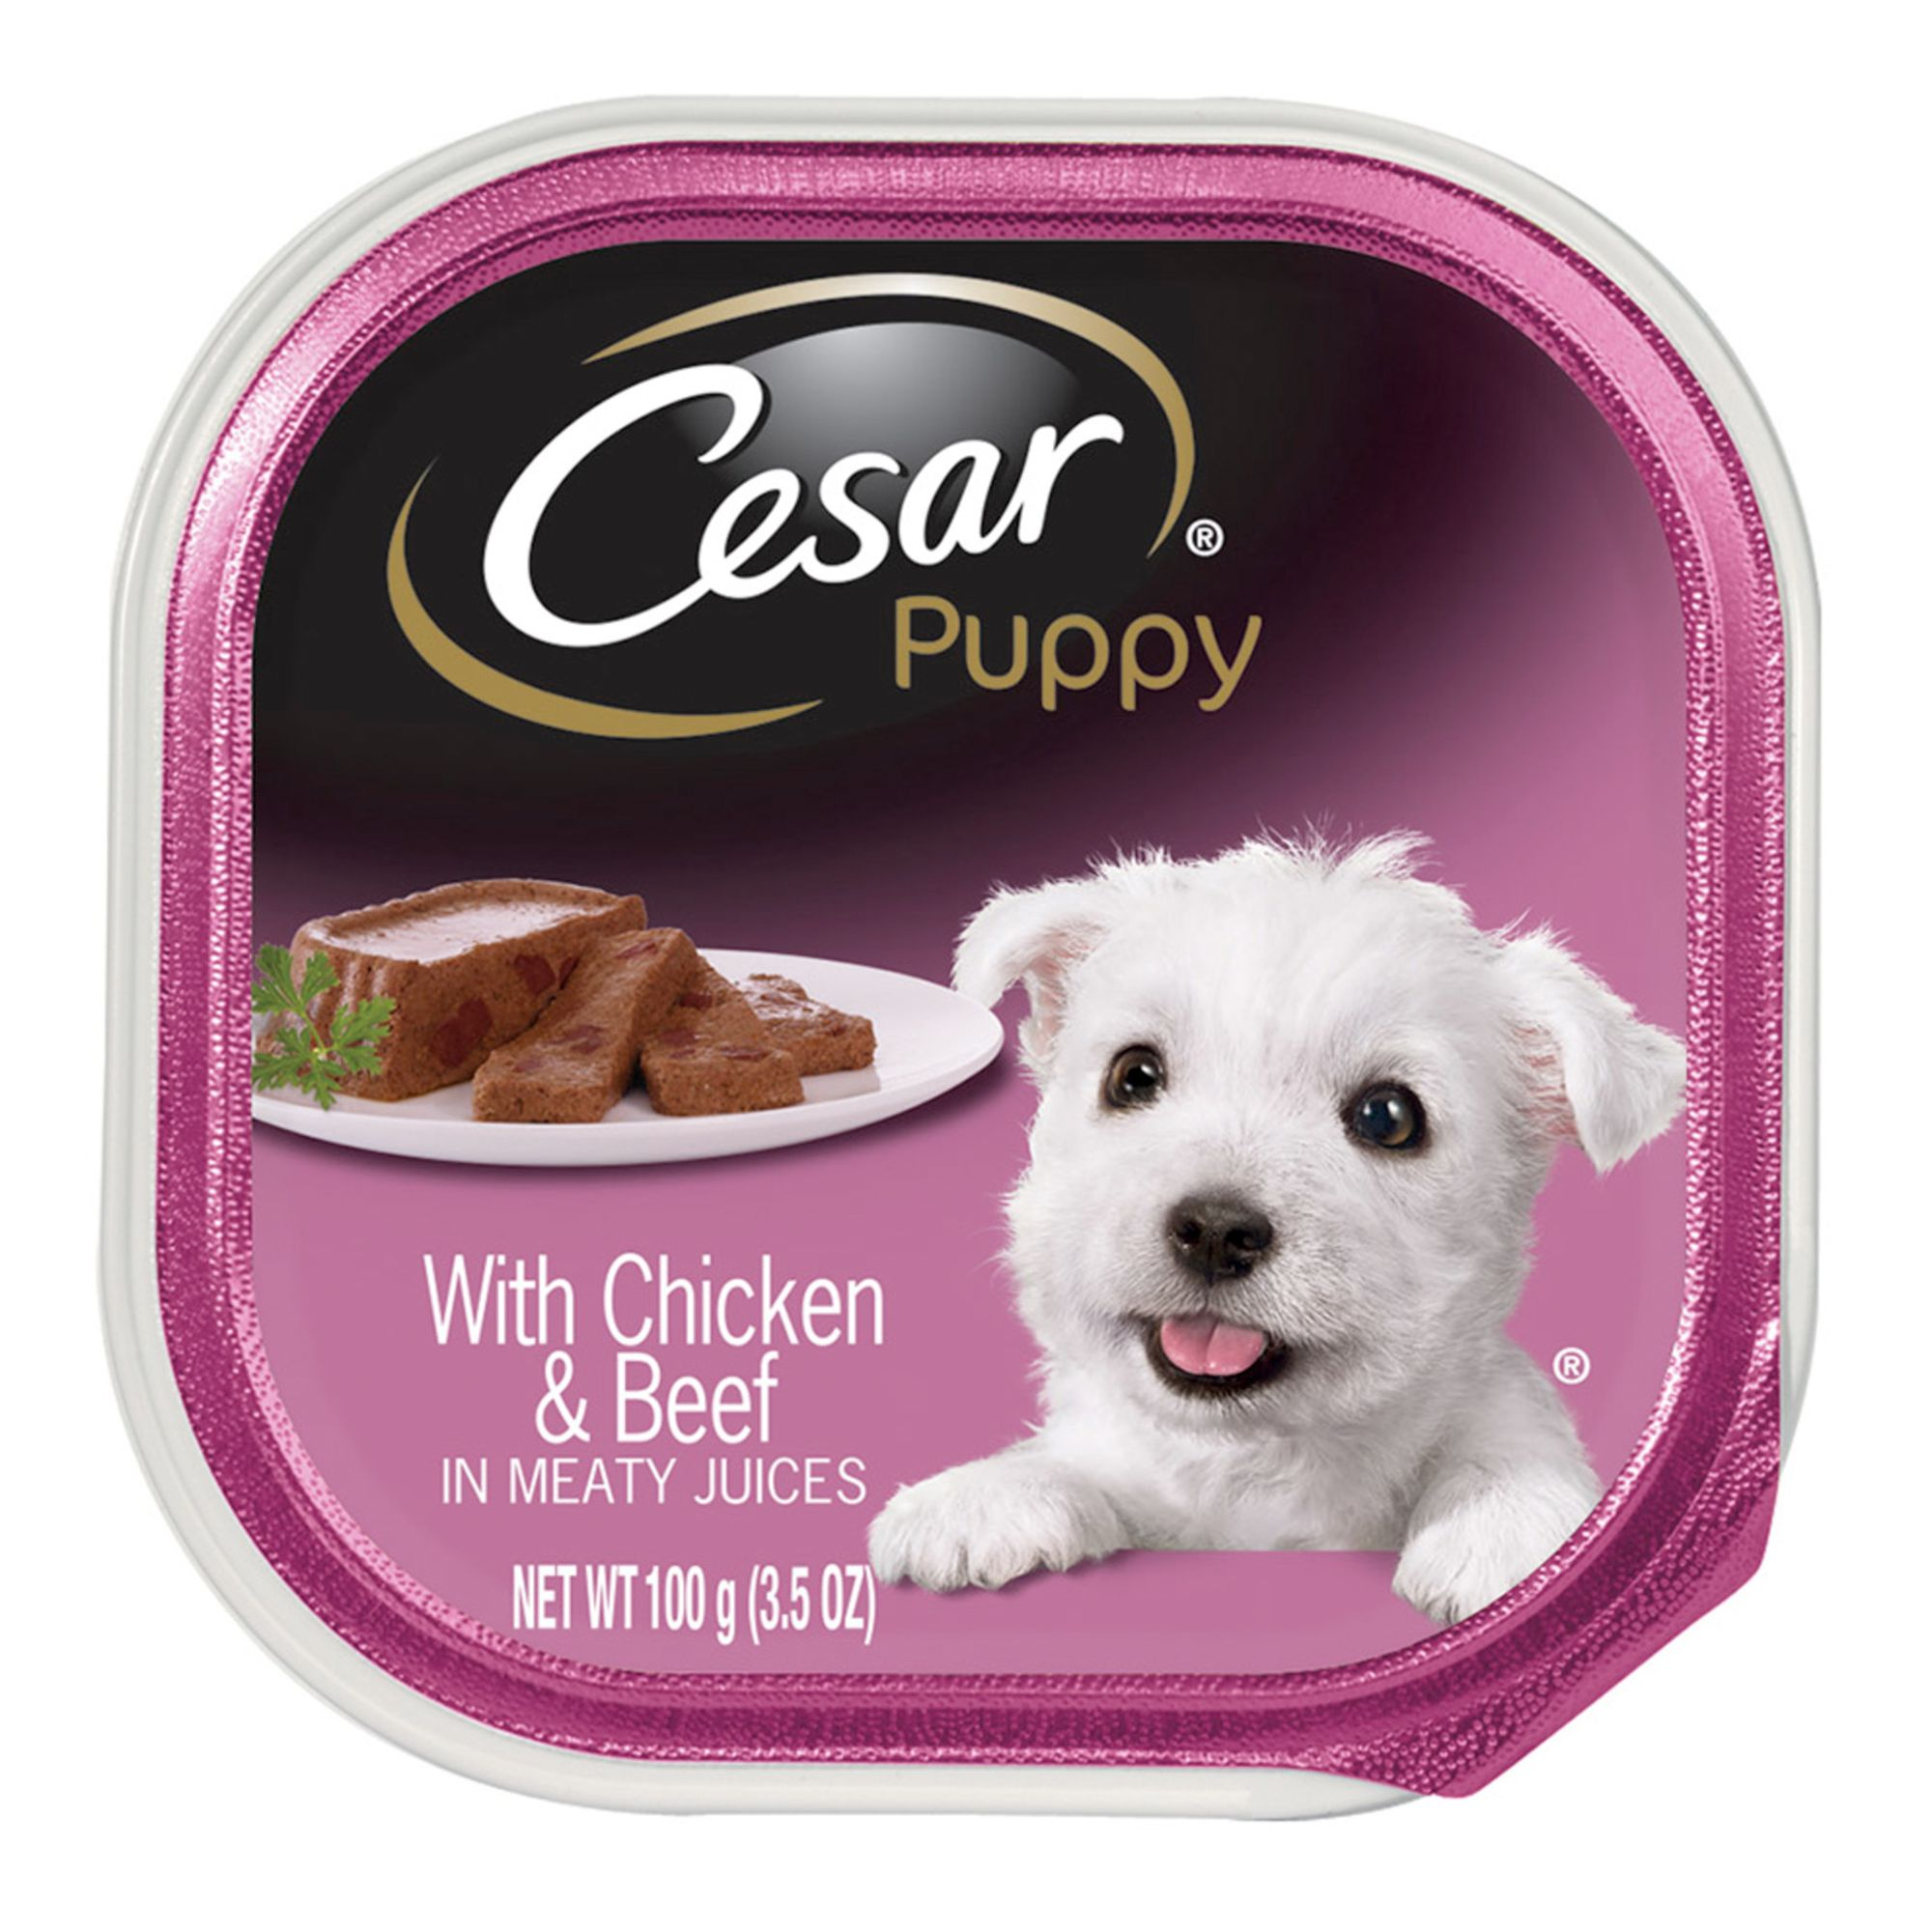 Cesar® Canine Cuisine Puppy Food - Chicken & Beef | dog Canned Food |  PetSmart